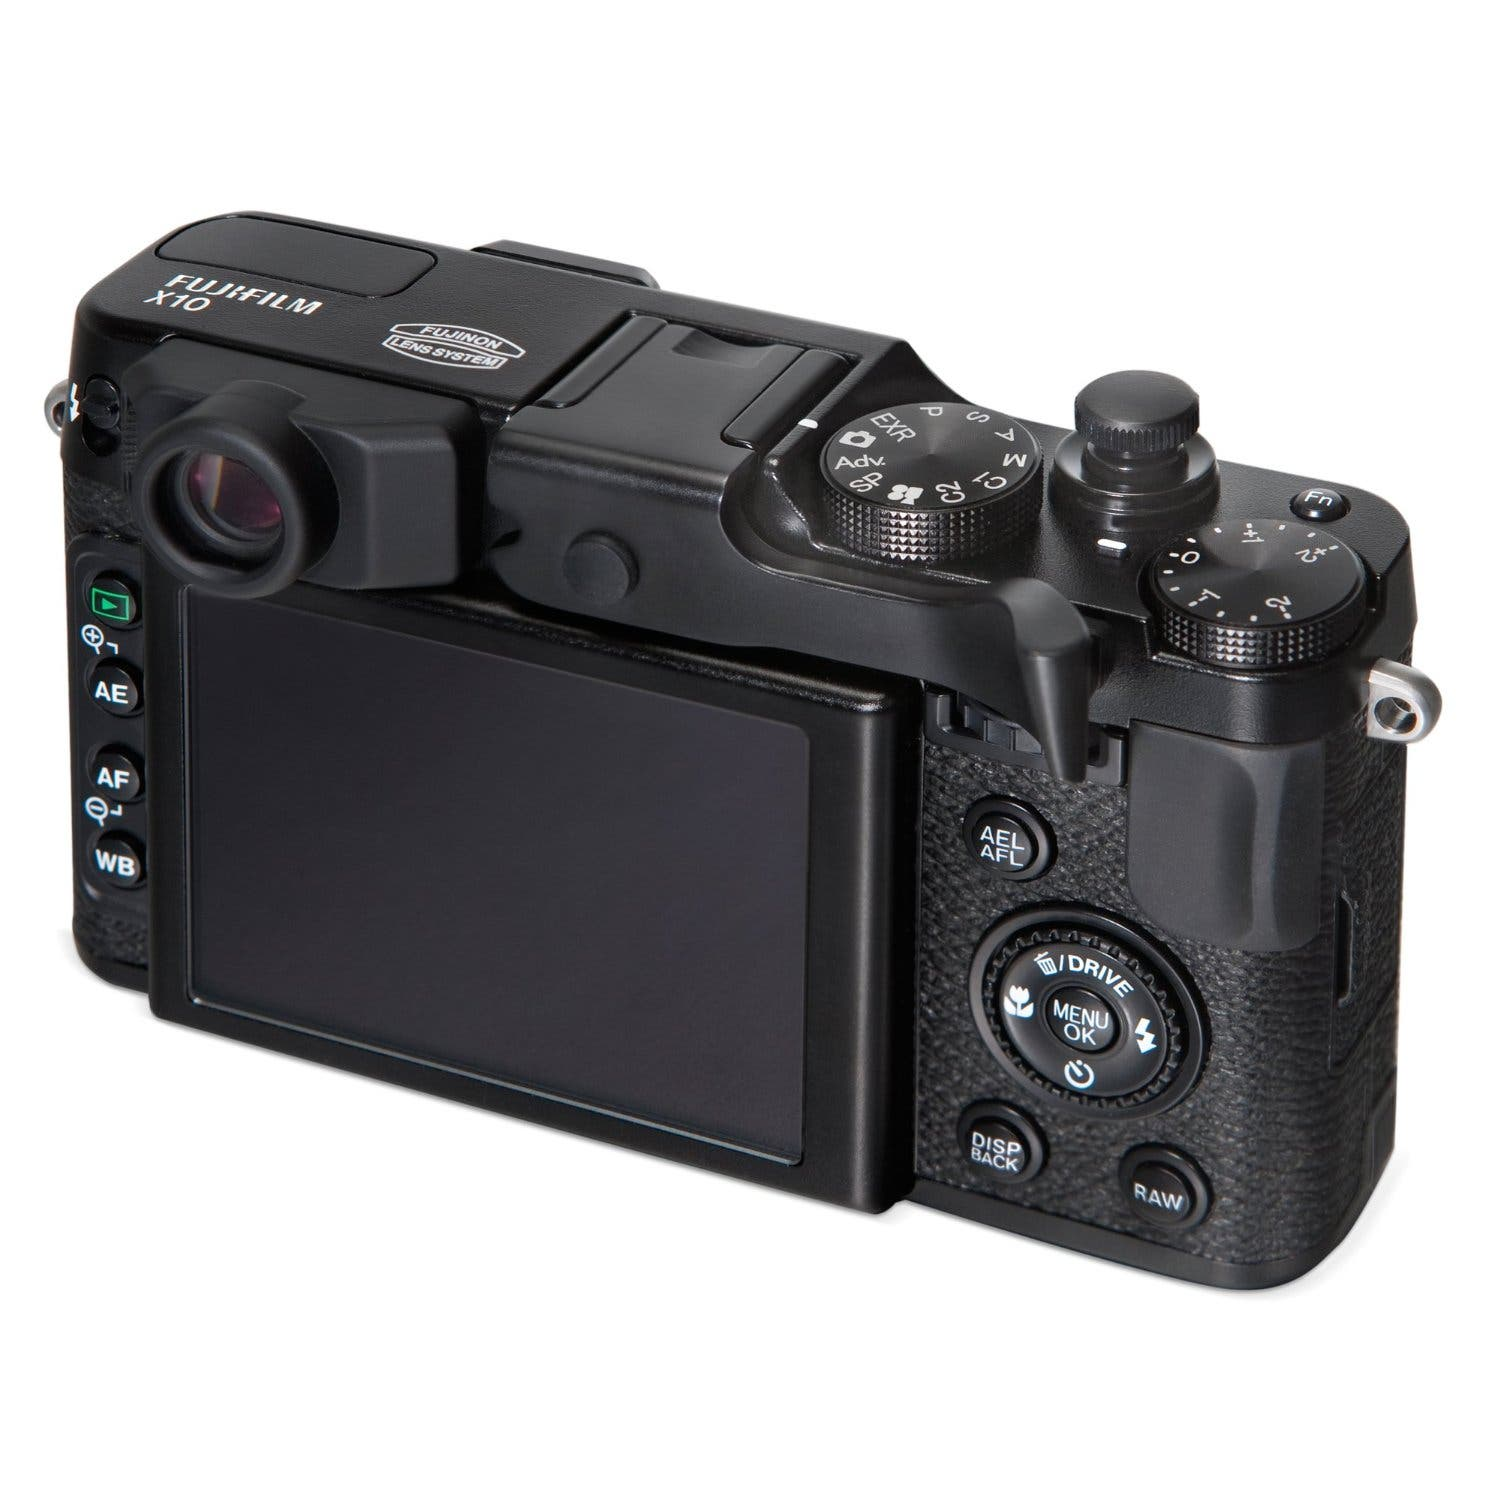 An Ergonomic Kit is Now Available for The Fuji X10; Diopters for the X Pro 1